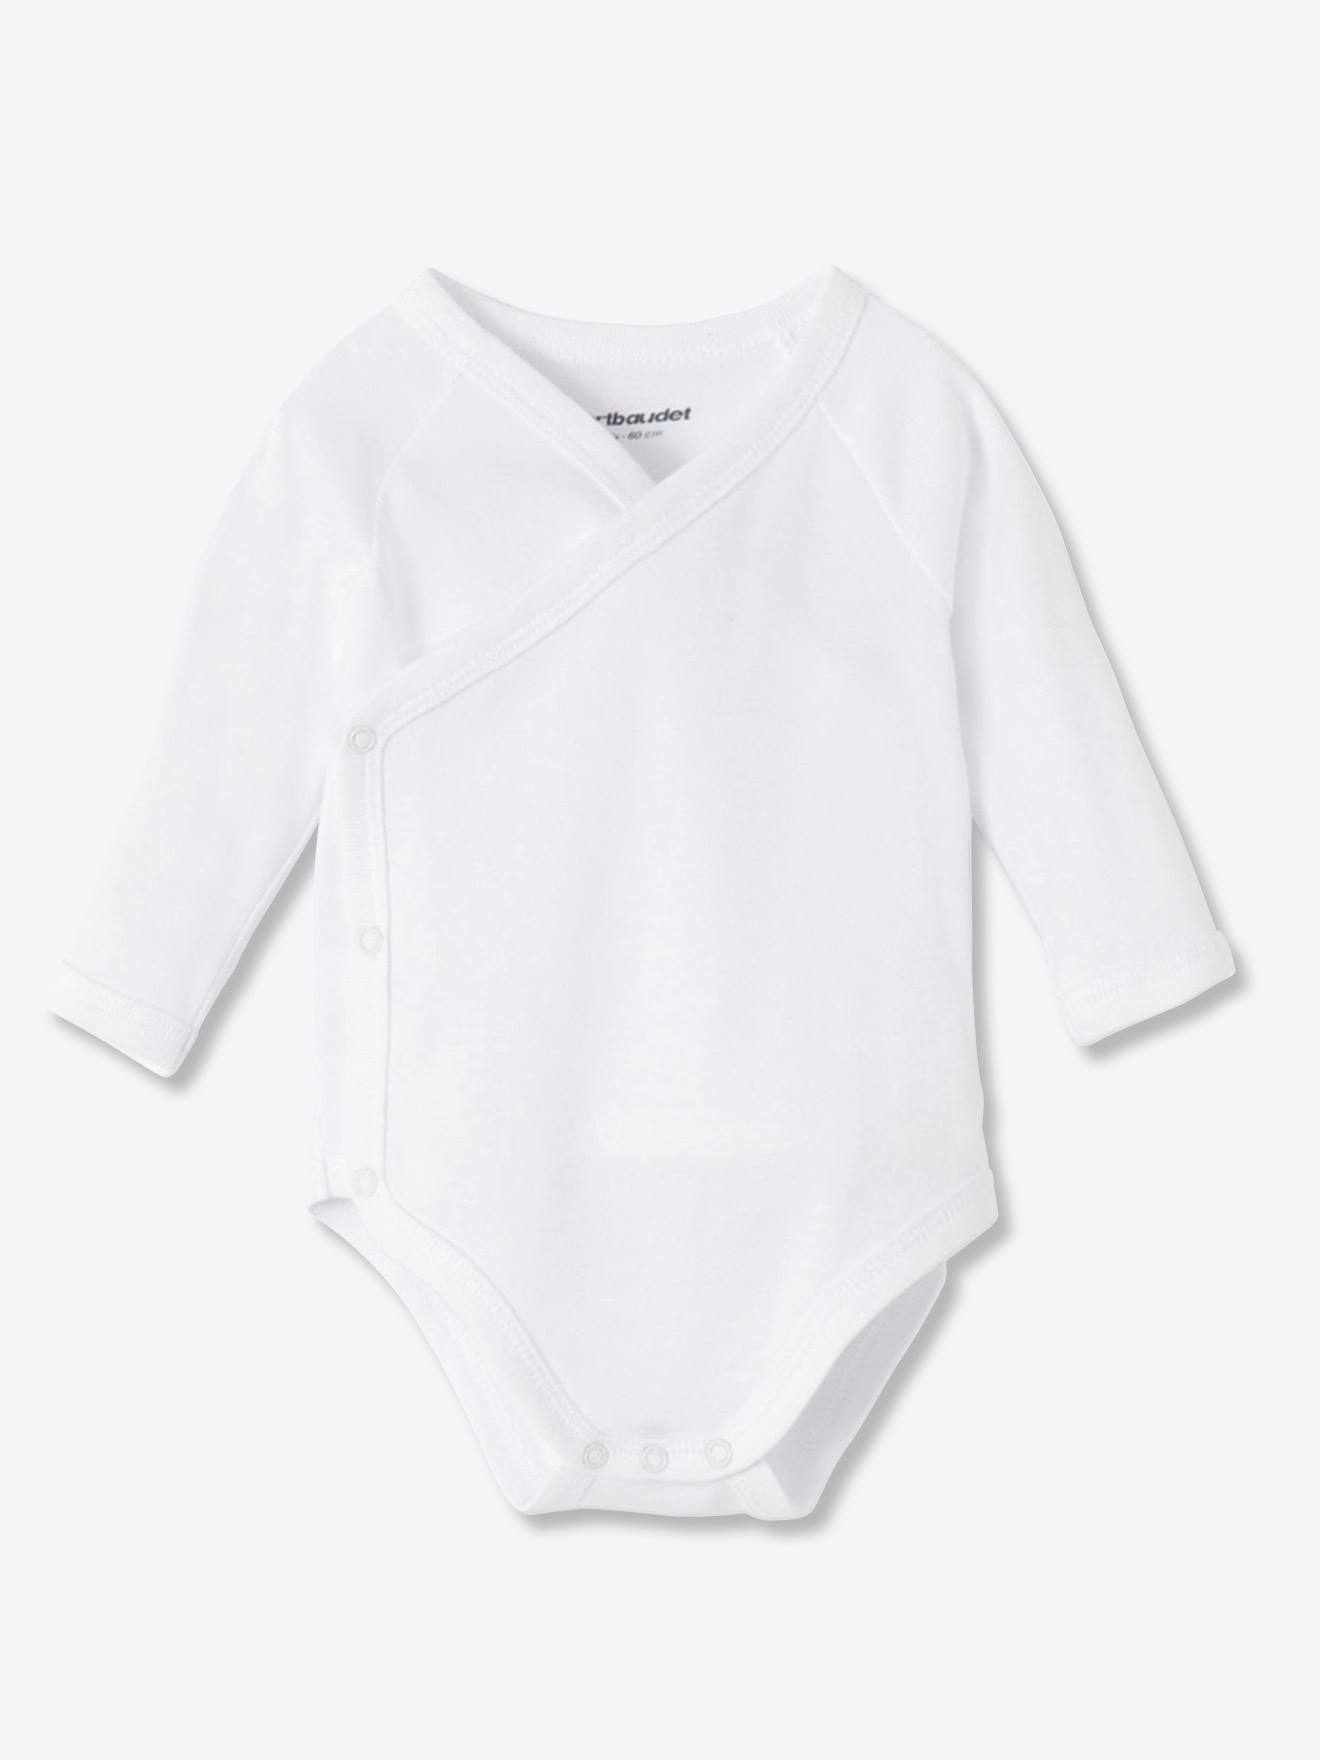 Newborn Baby Pack of 6 Long-Sleeved White Bodysuits in Pure Cotton - white